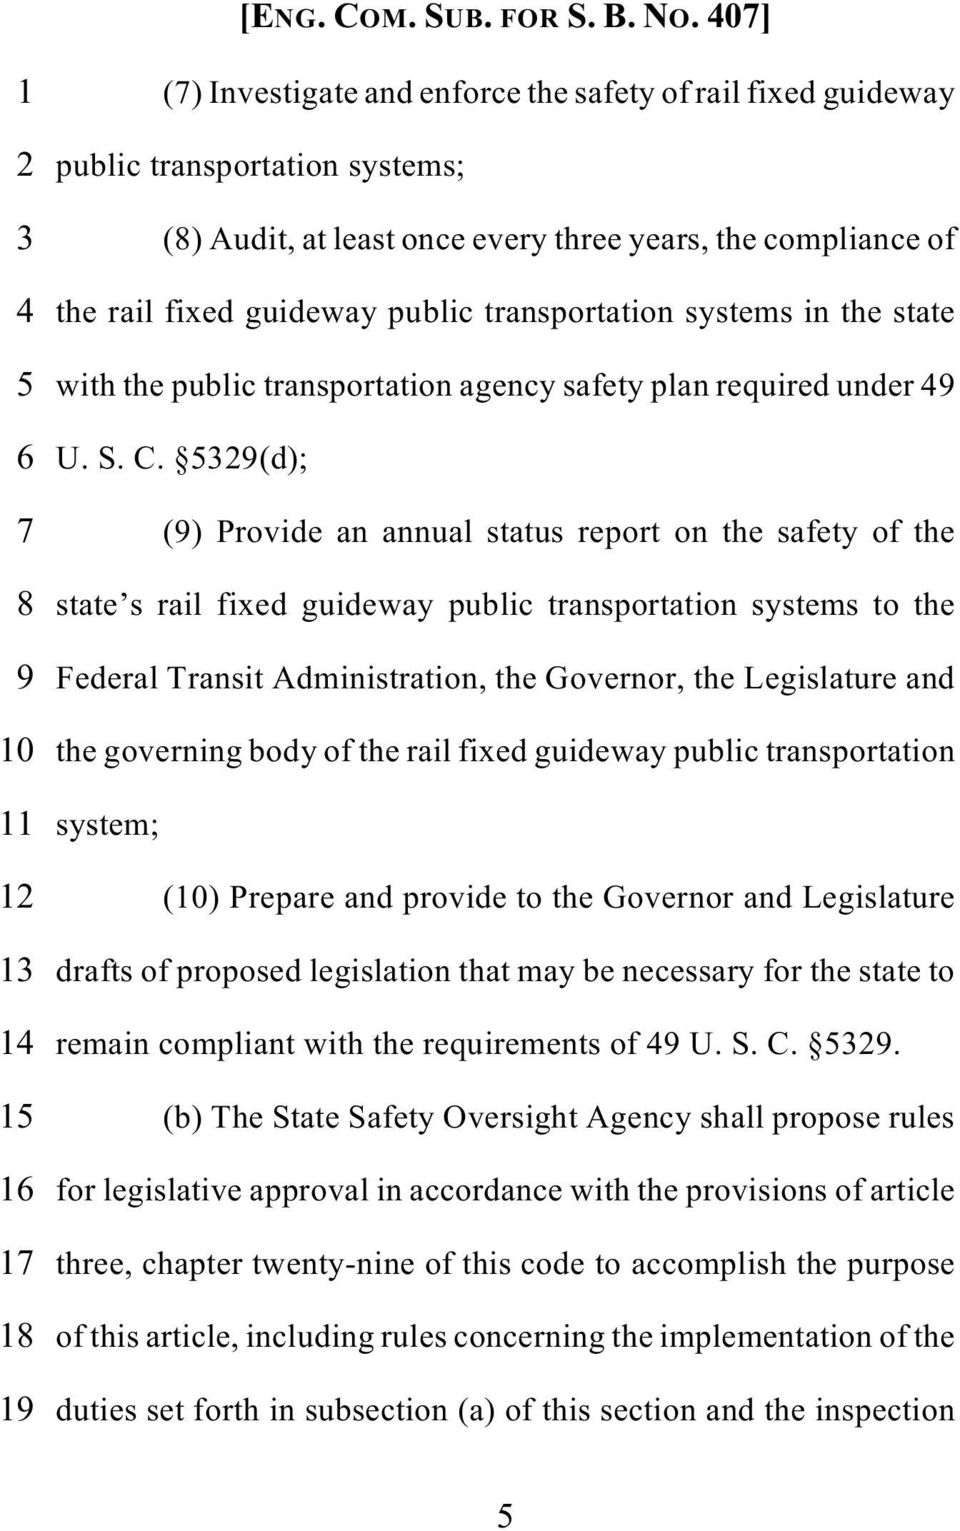 5329(d); 7 (9) Provide an annual status report on the safety of the 8 state s rail fixed guideway public transportation systems to the 9 Federal Transit Administration, the Governor, the Legislature